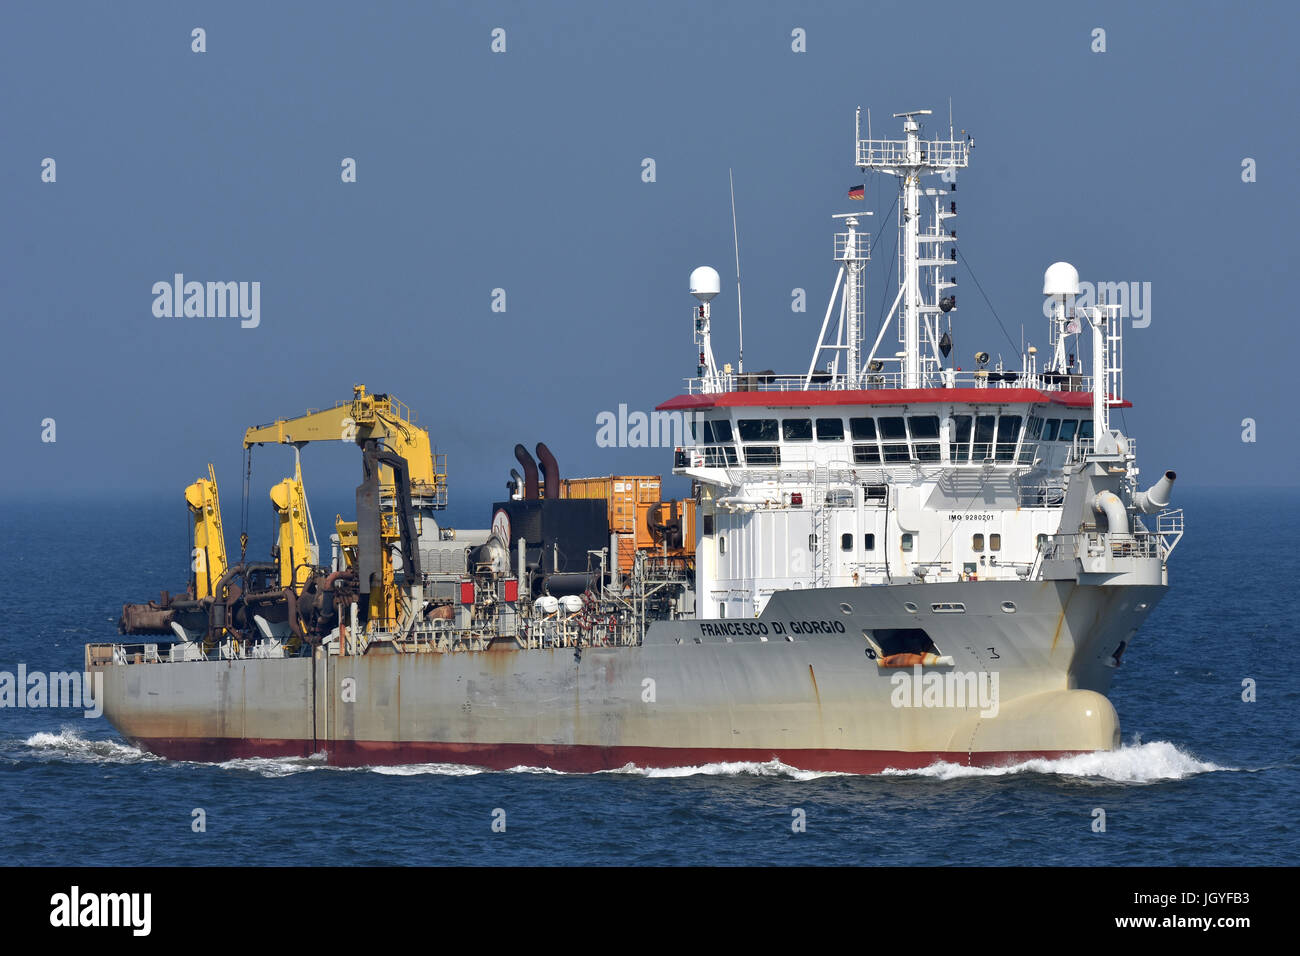 Dredger Francesco di Giorgio Stock Photo